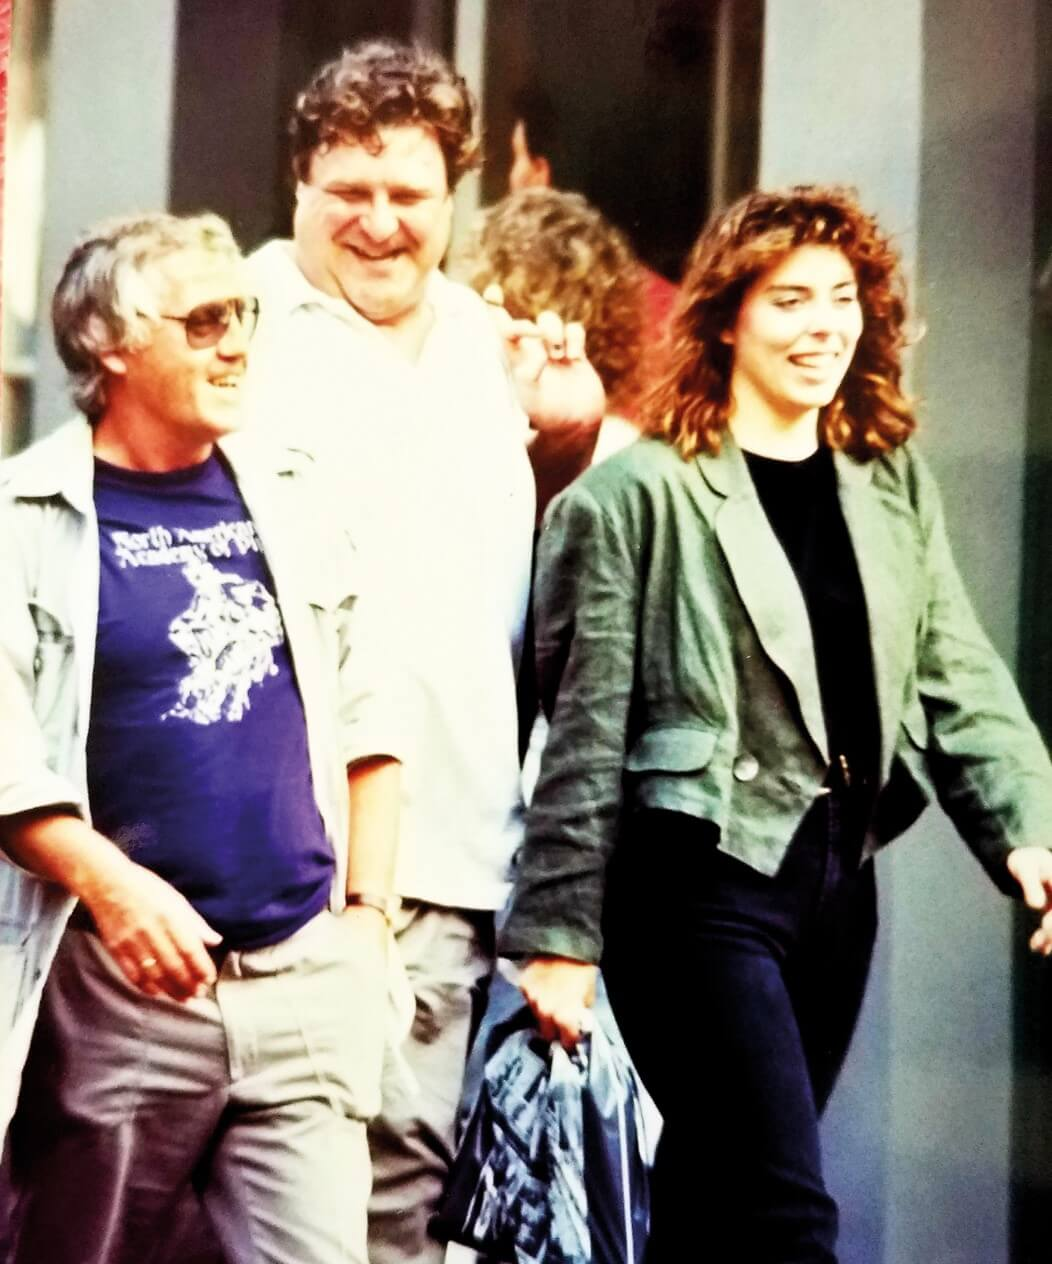 Out man with John Goodman and his wife